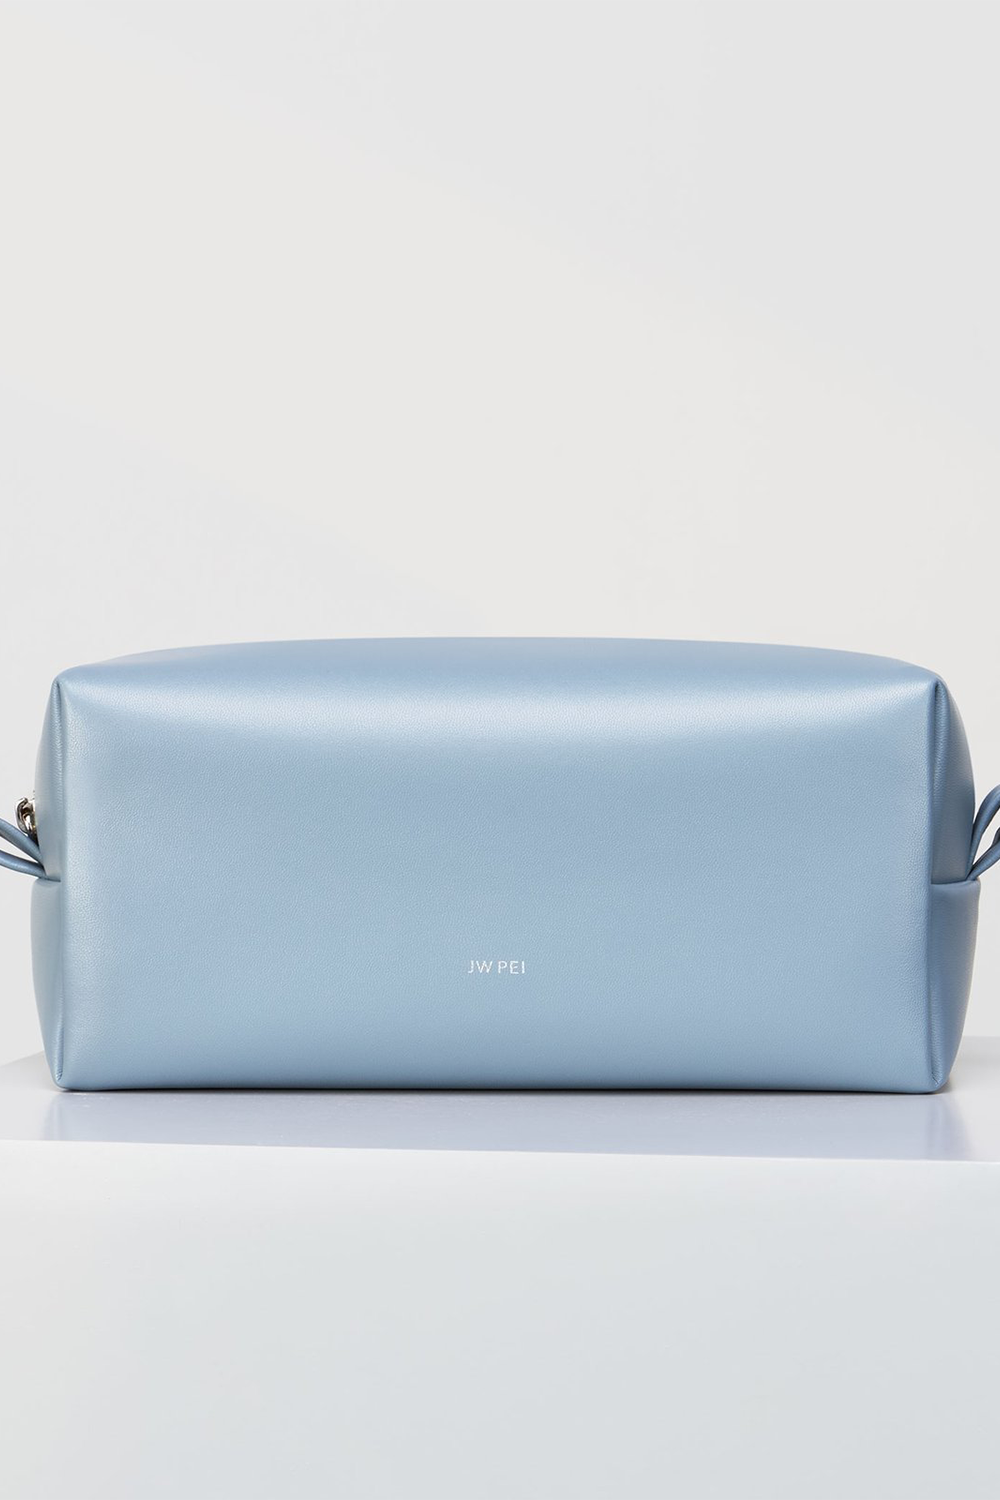 The Makeup Bag in Light Blue